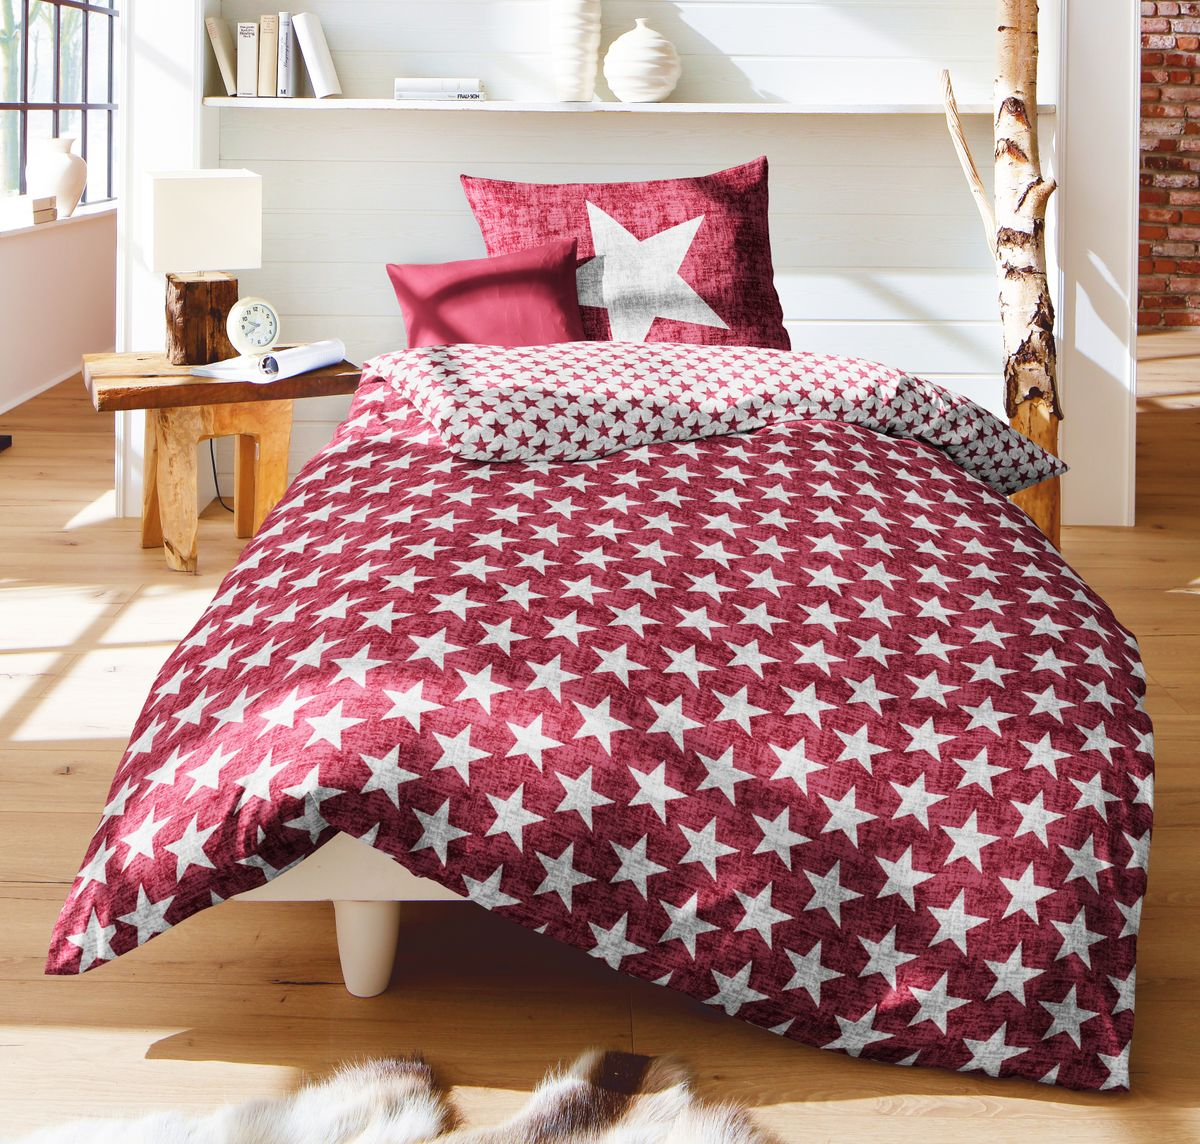 fleuresse biber stern wende bettw sche sterne stars rot. Black Bedroom Furniture Sets. Home Design Ideas